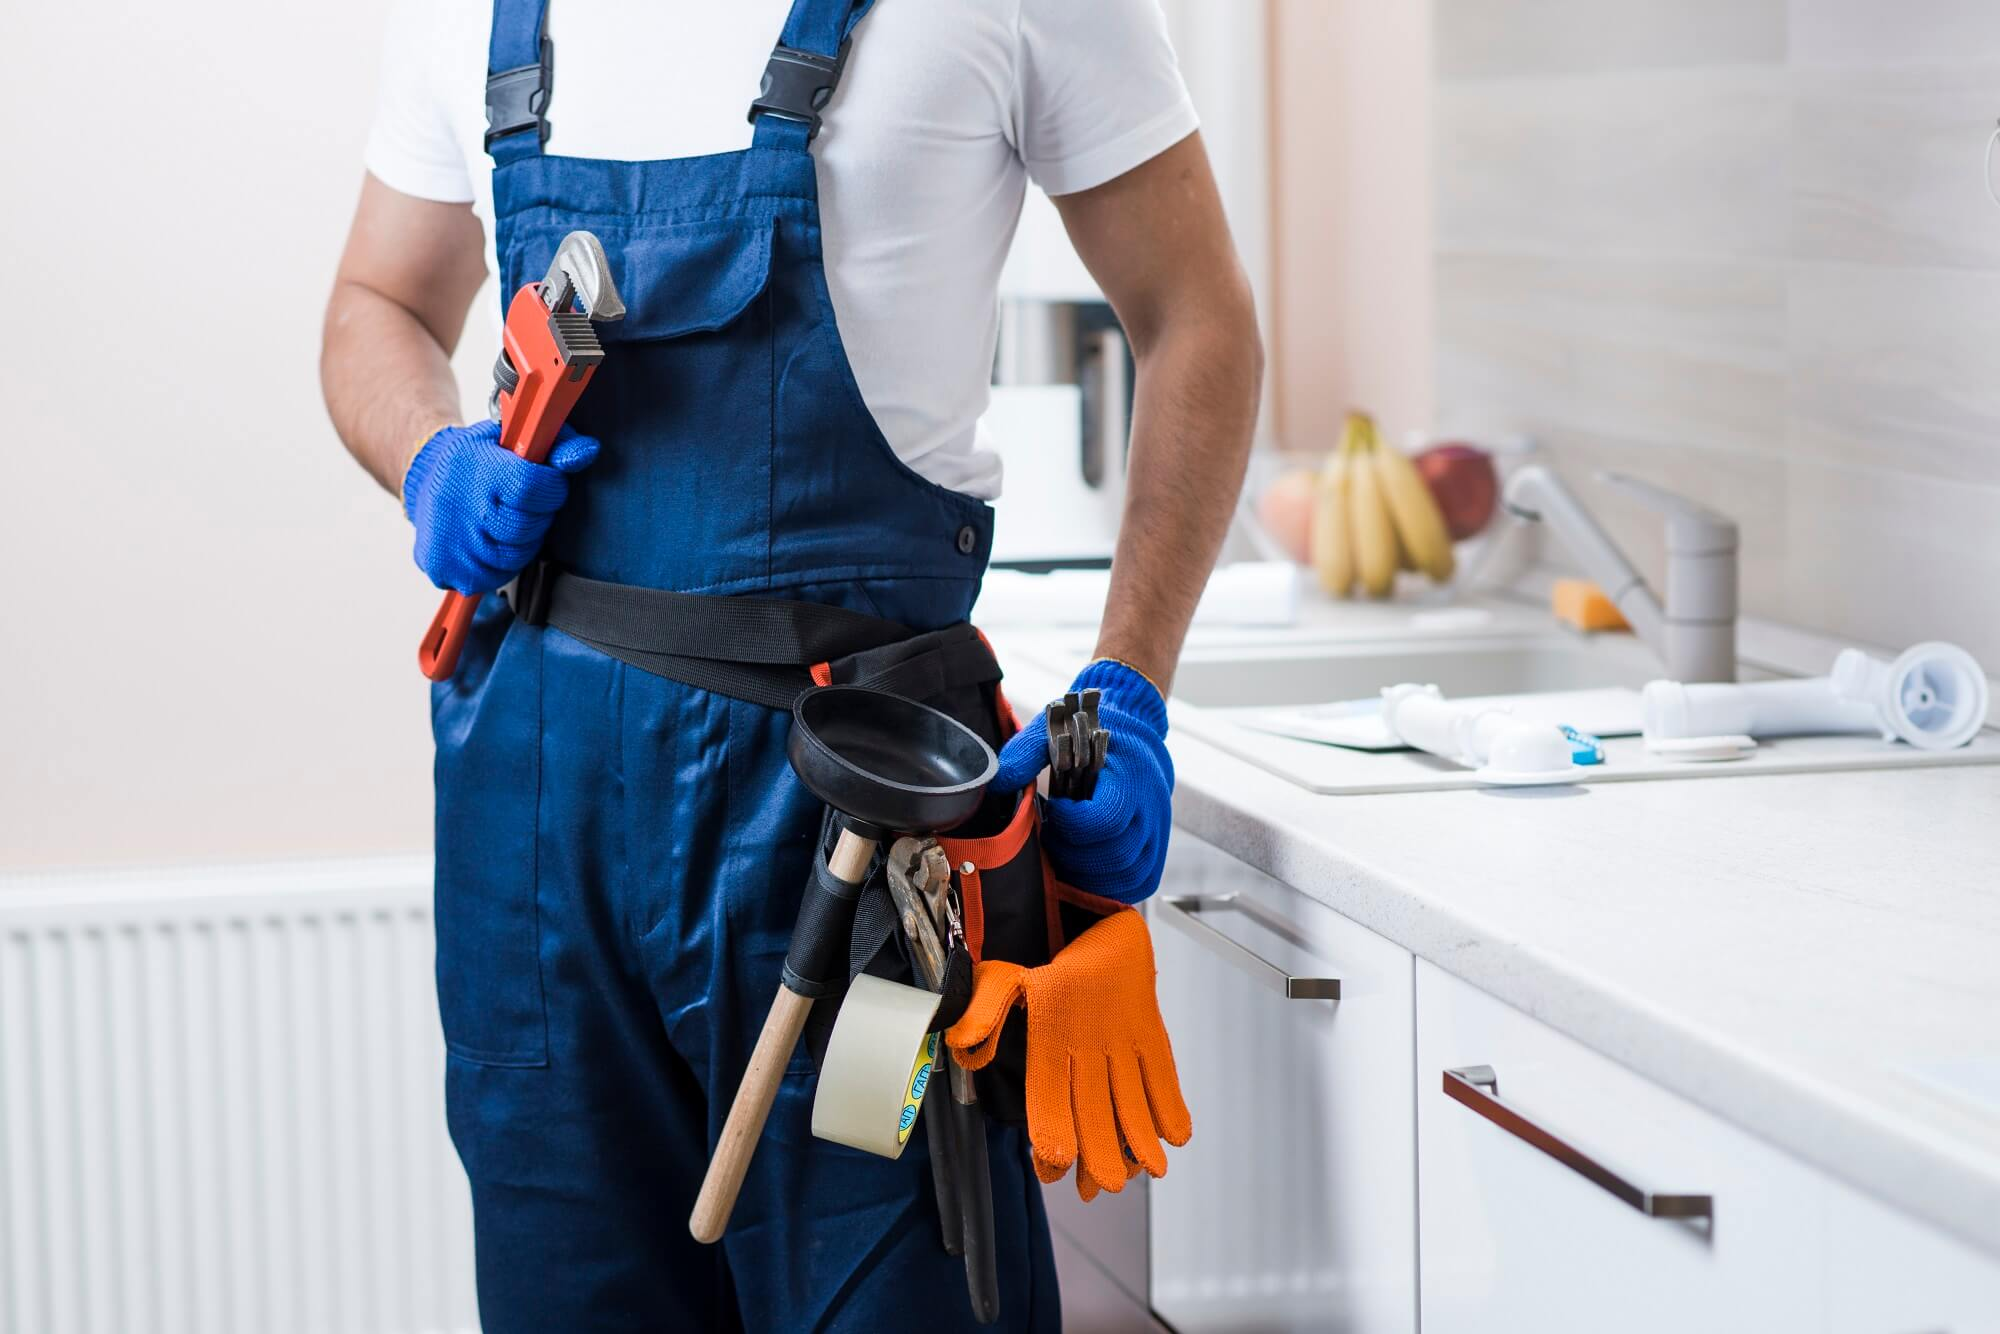 Expert Certified Plumbers, ready to provide our services with confidence